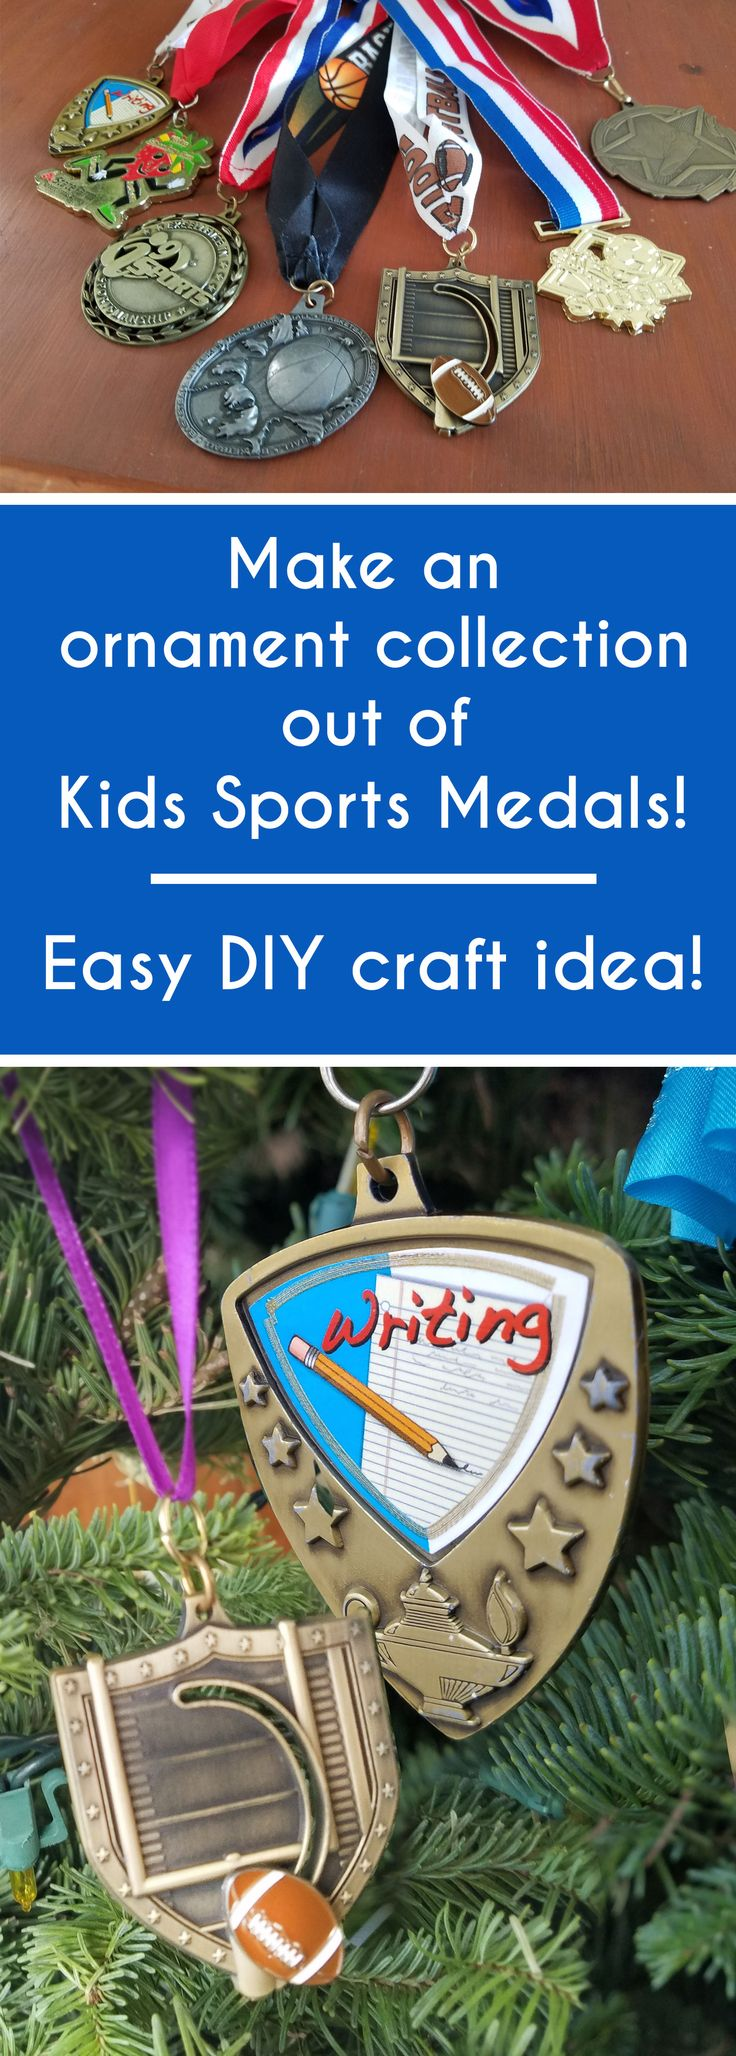 diy ornament out of kids sports medals - such an easy way to get it out of the drawers and display for years to come! Kids can even make these DIY crafts as gifts for proud grandparents! Make your race and fun run medals into ornaments too!